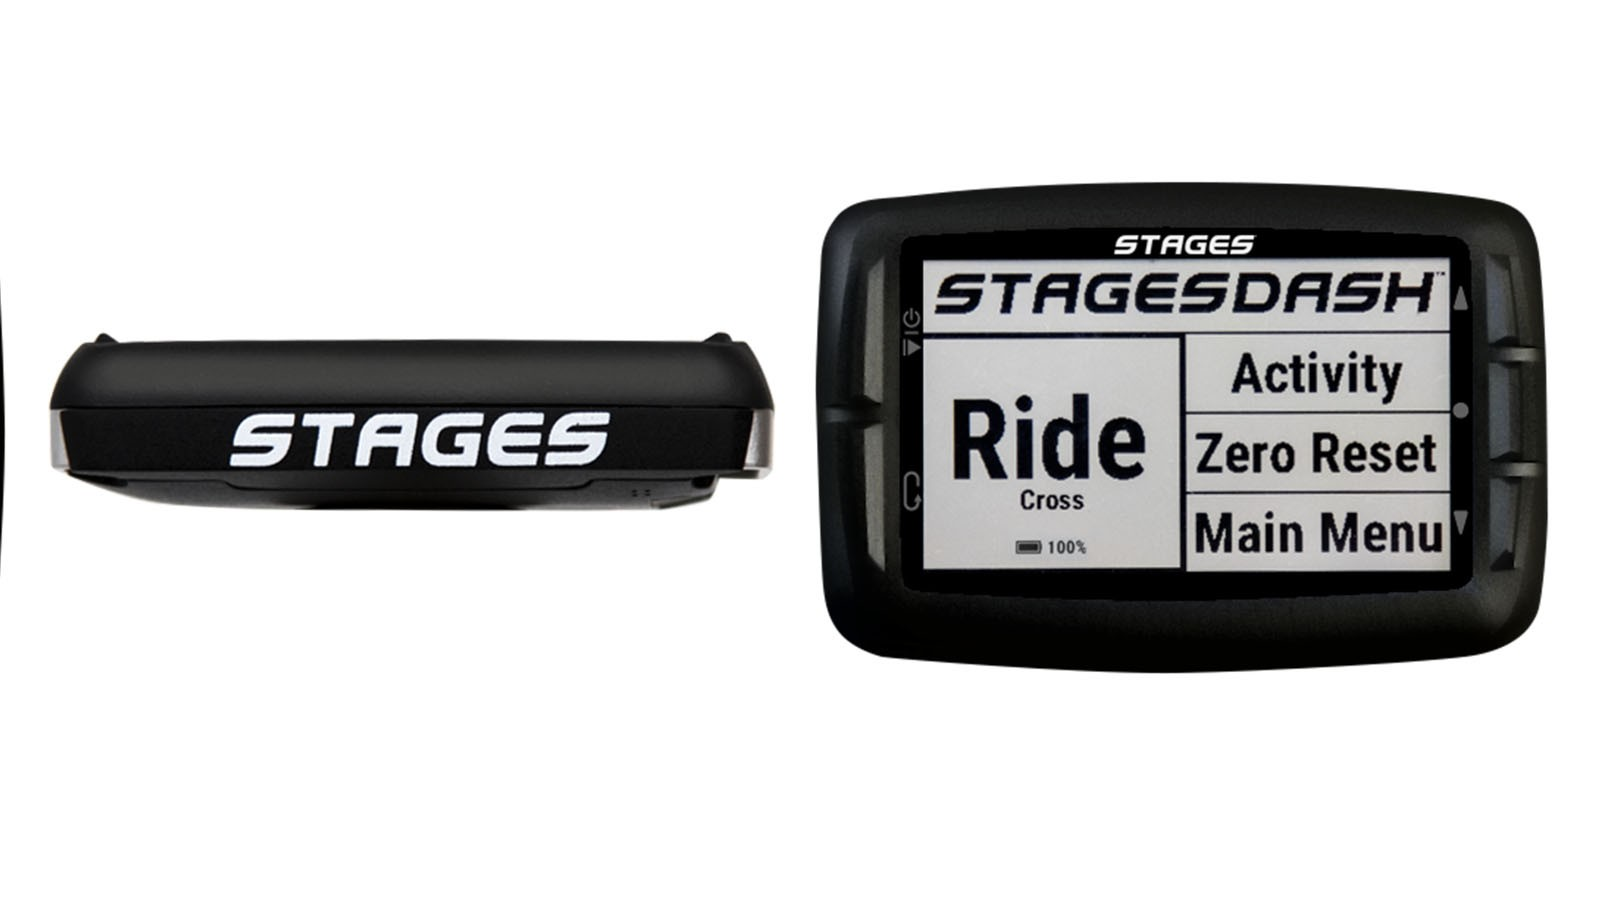 Stages Dash cycling computer review - GPS Computers